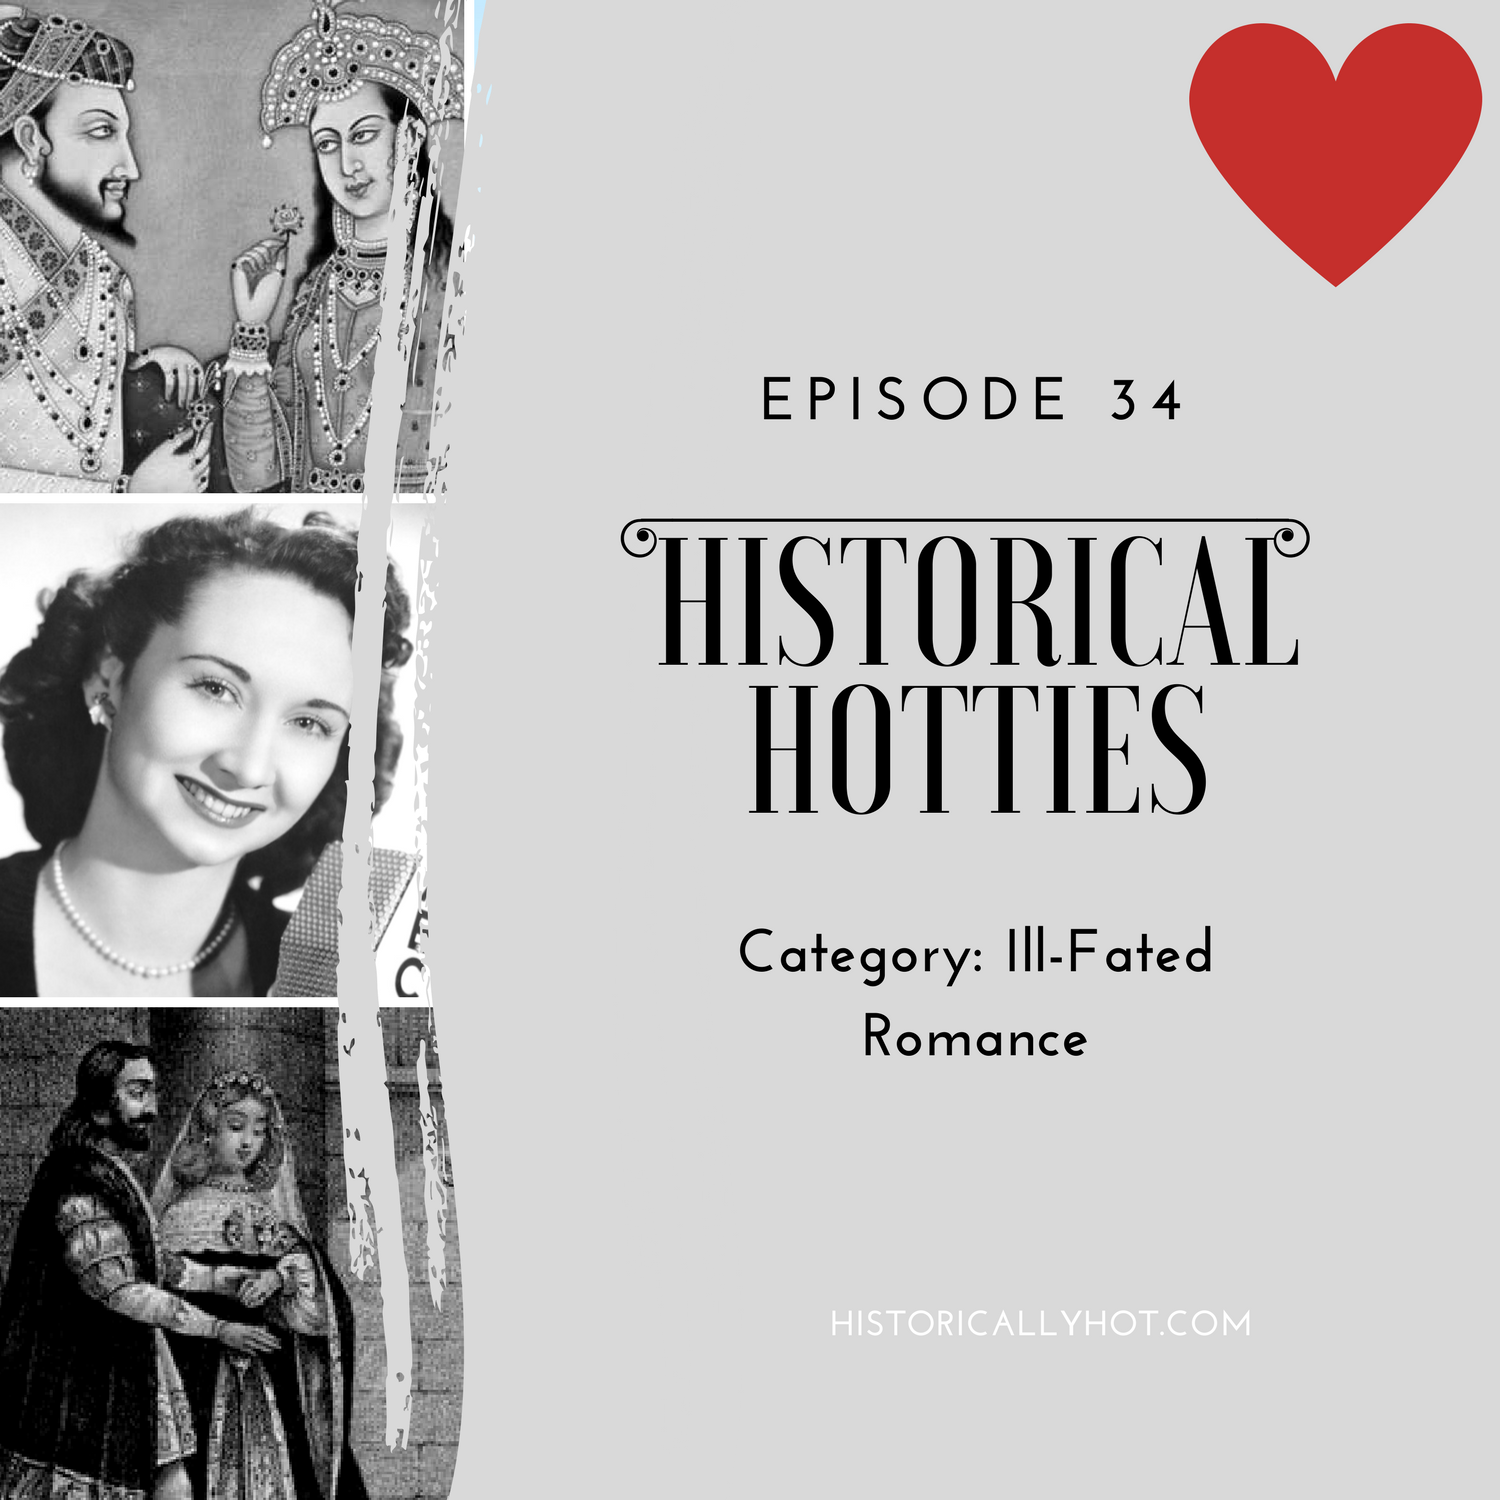 historical hotties romance